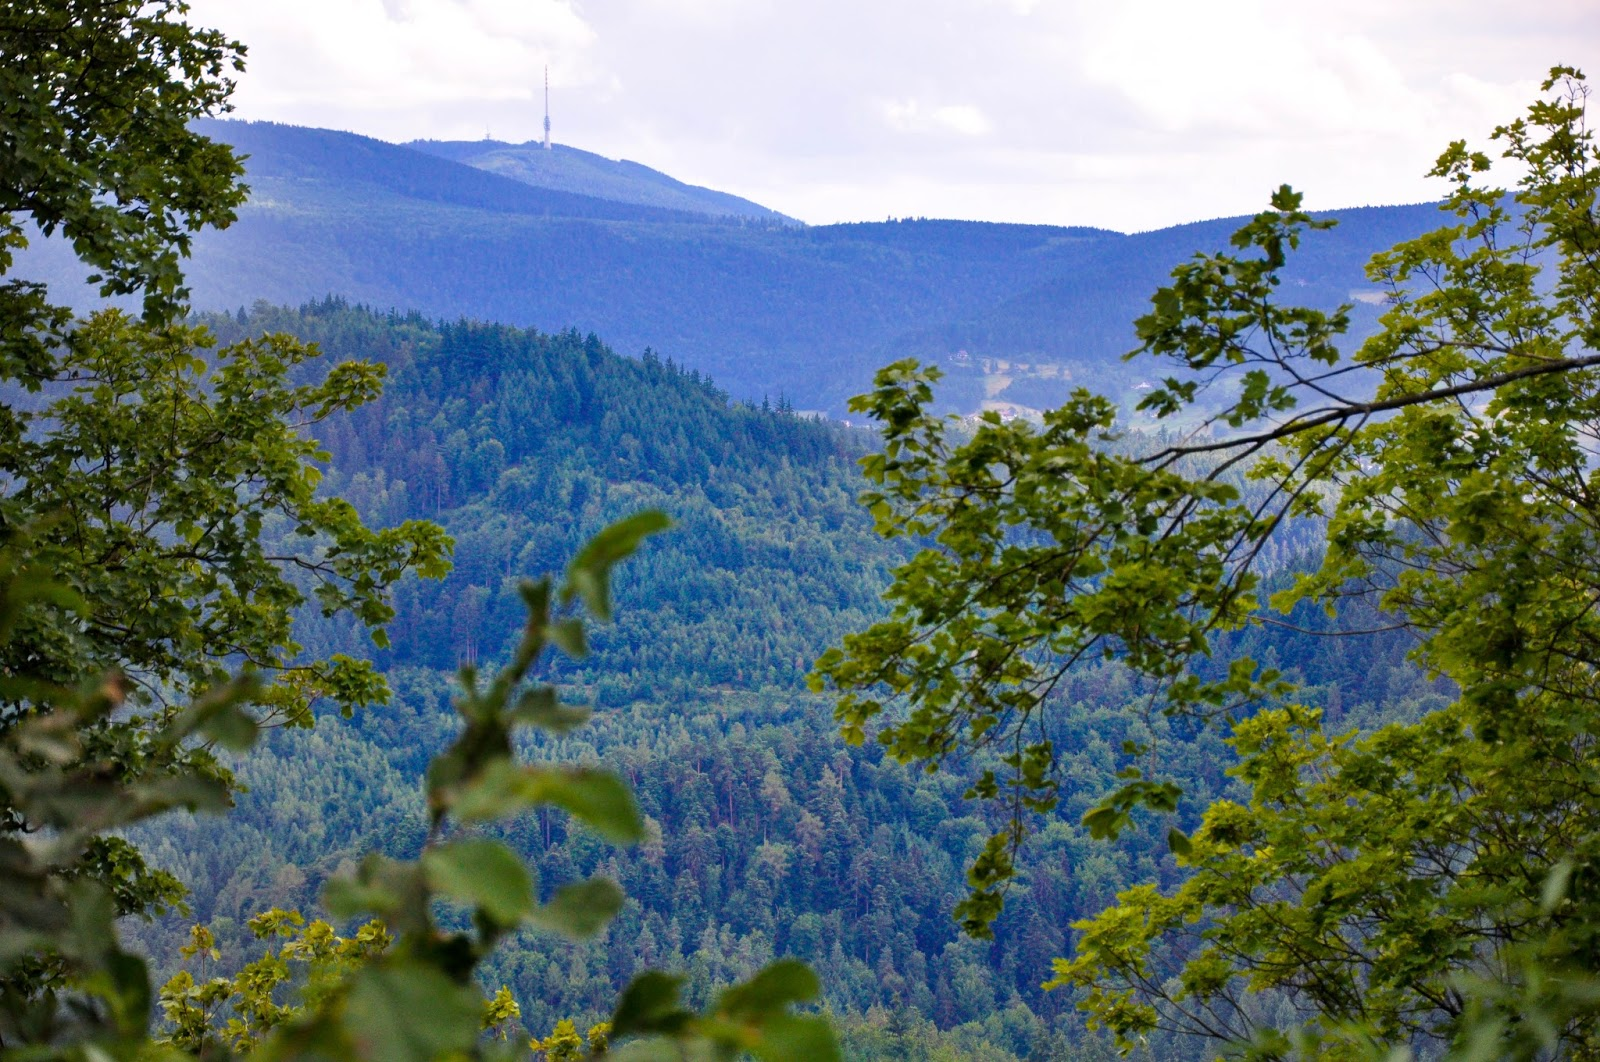 The Black Forest seen from Yburg, Germany